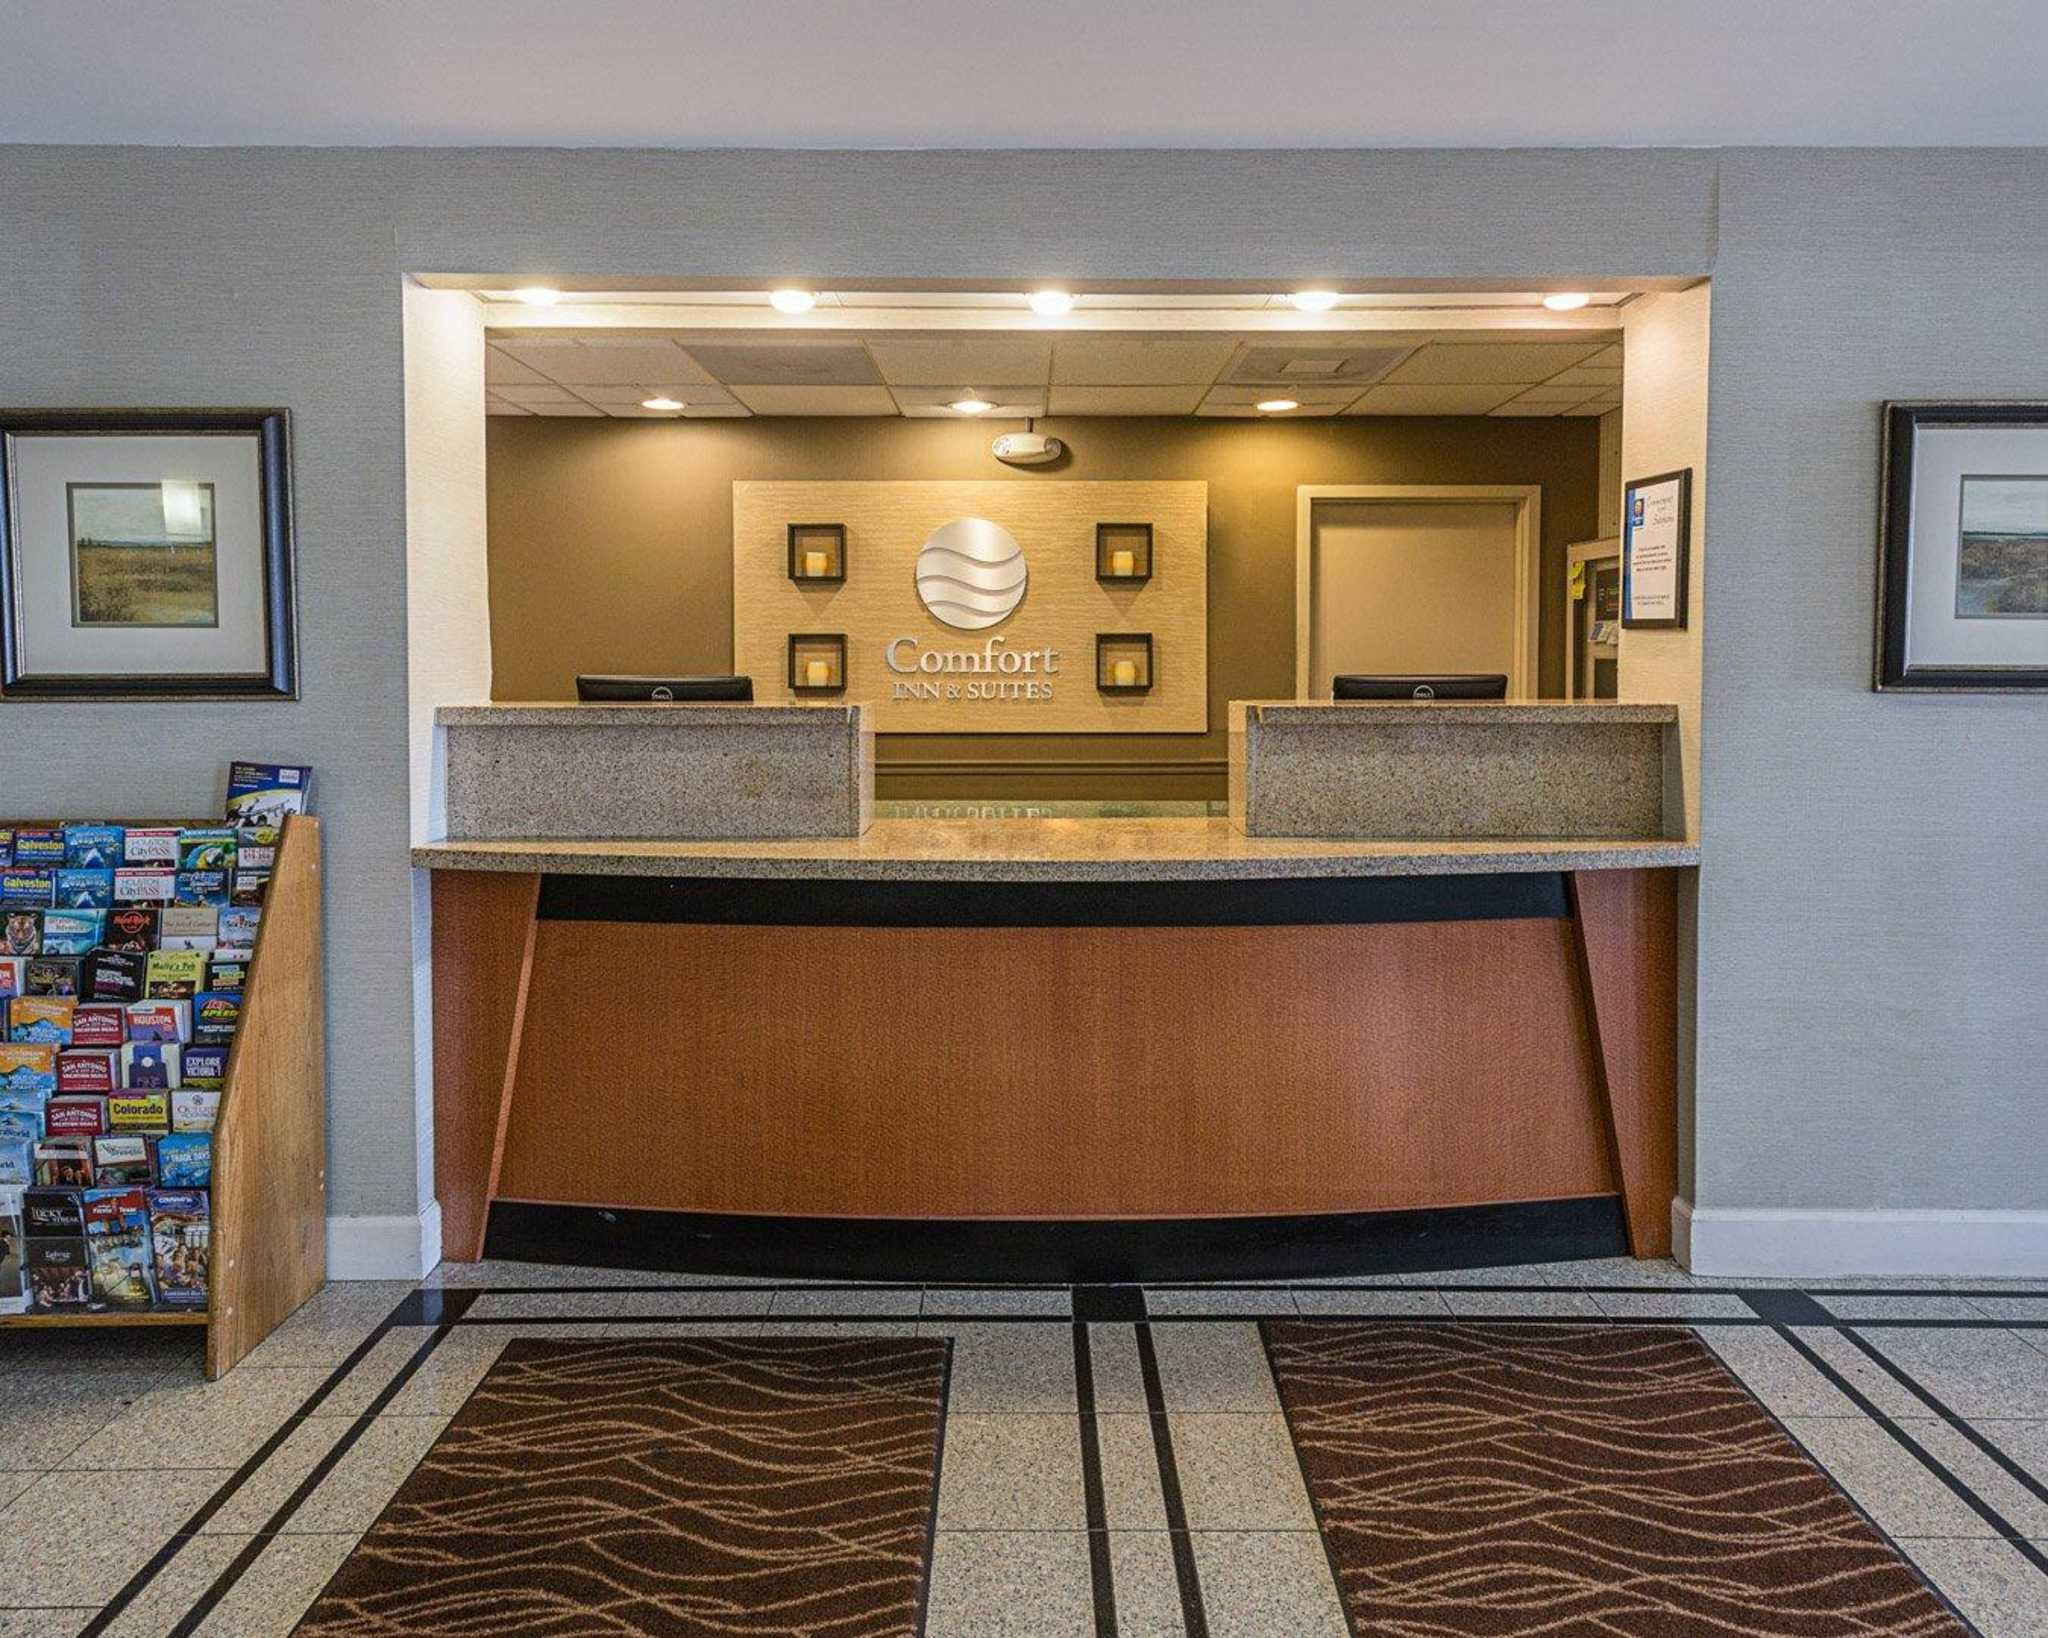 Red Roof PLUS+ San Antonio Downtown - Riverwalk is a % smoke-free, family-friendly hotel in Downtown San Antonio, Texas. We are one of the best budget hotels located just minutes away from world-famous the San Antonio Riverwalk.